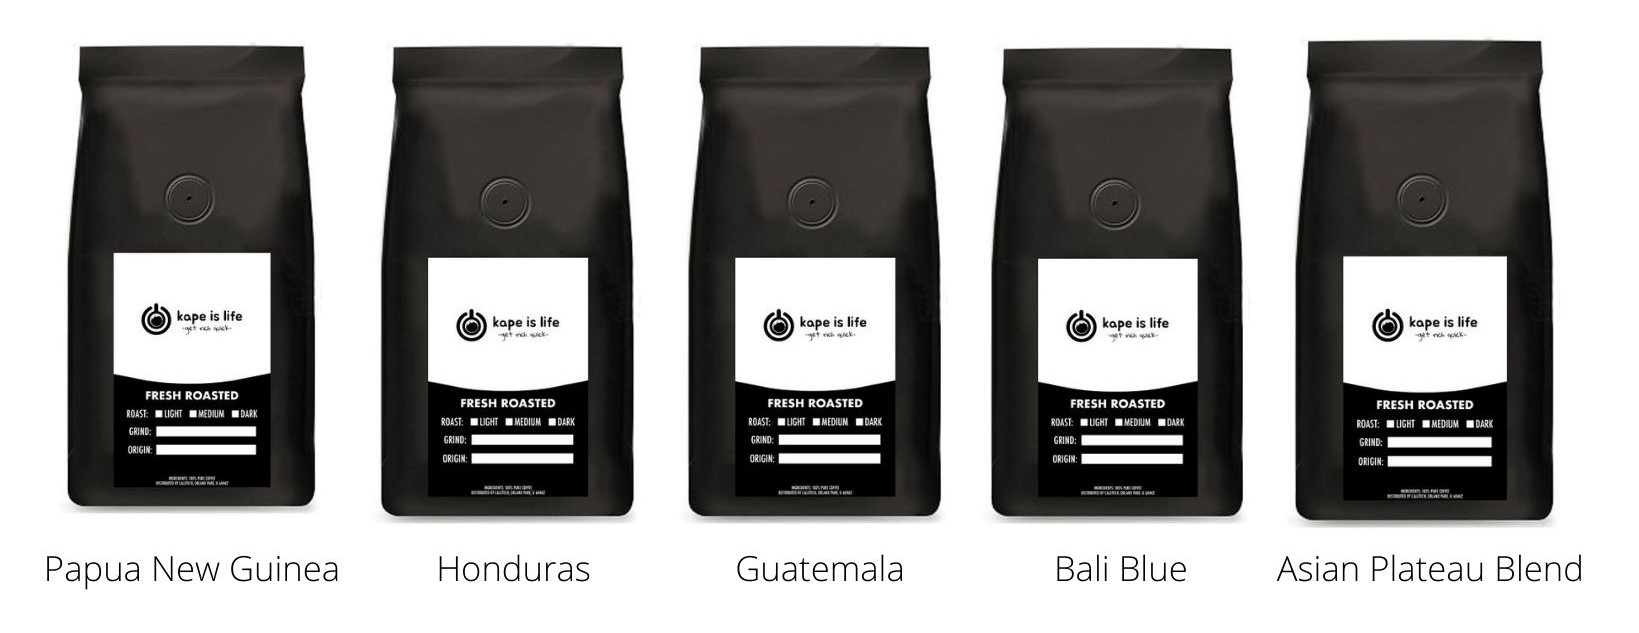 Best coffee brands for espresso, flavored, organic & high-caffeine blends